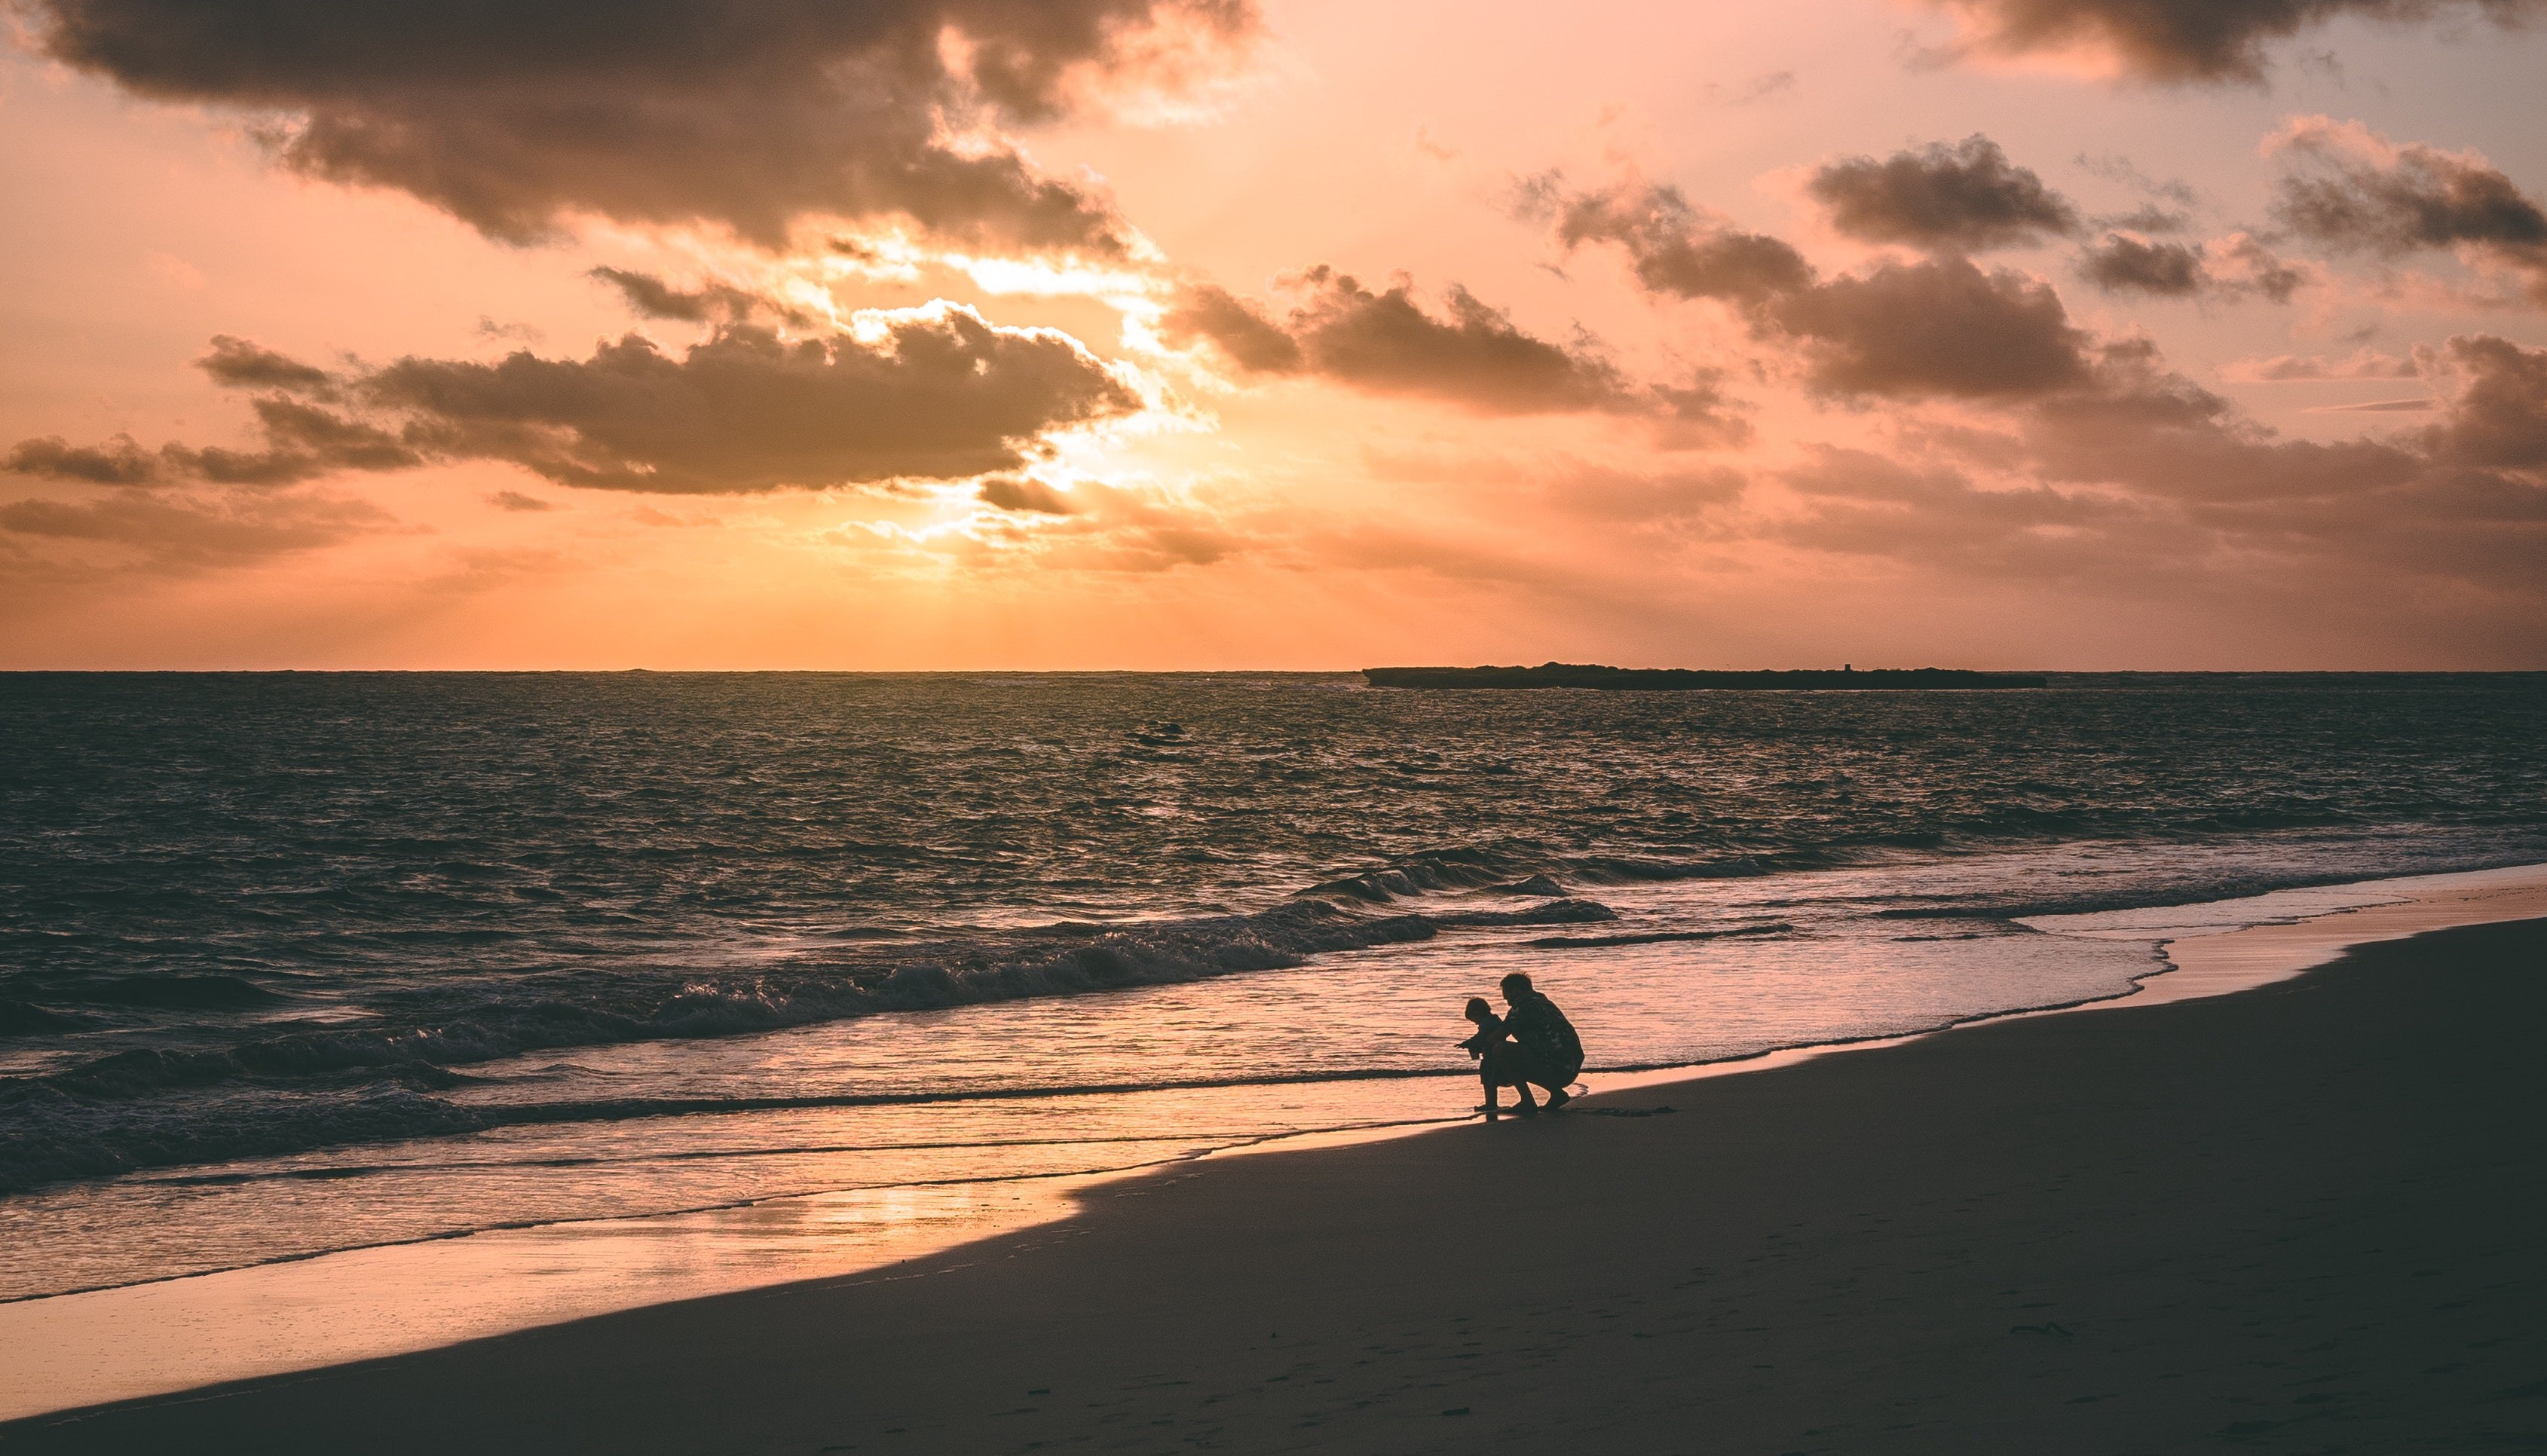 Parent and child at the edge of the ocean at sunset.